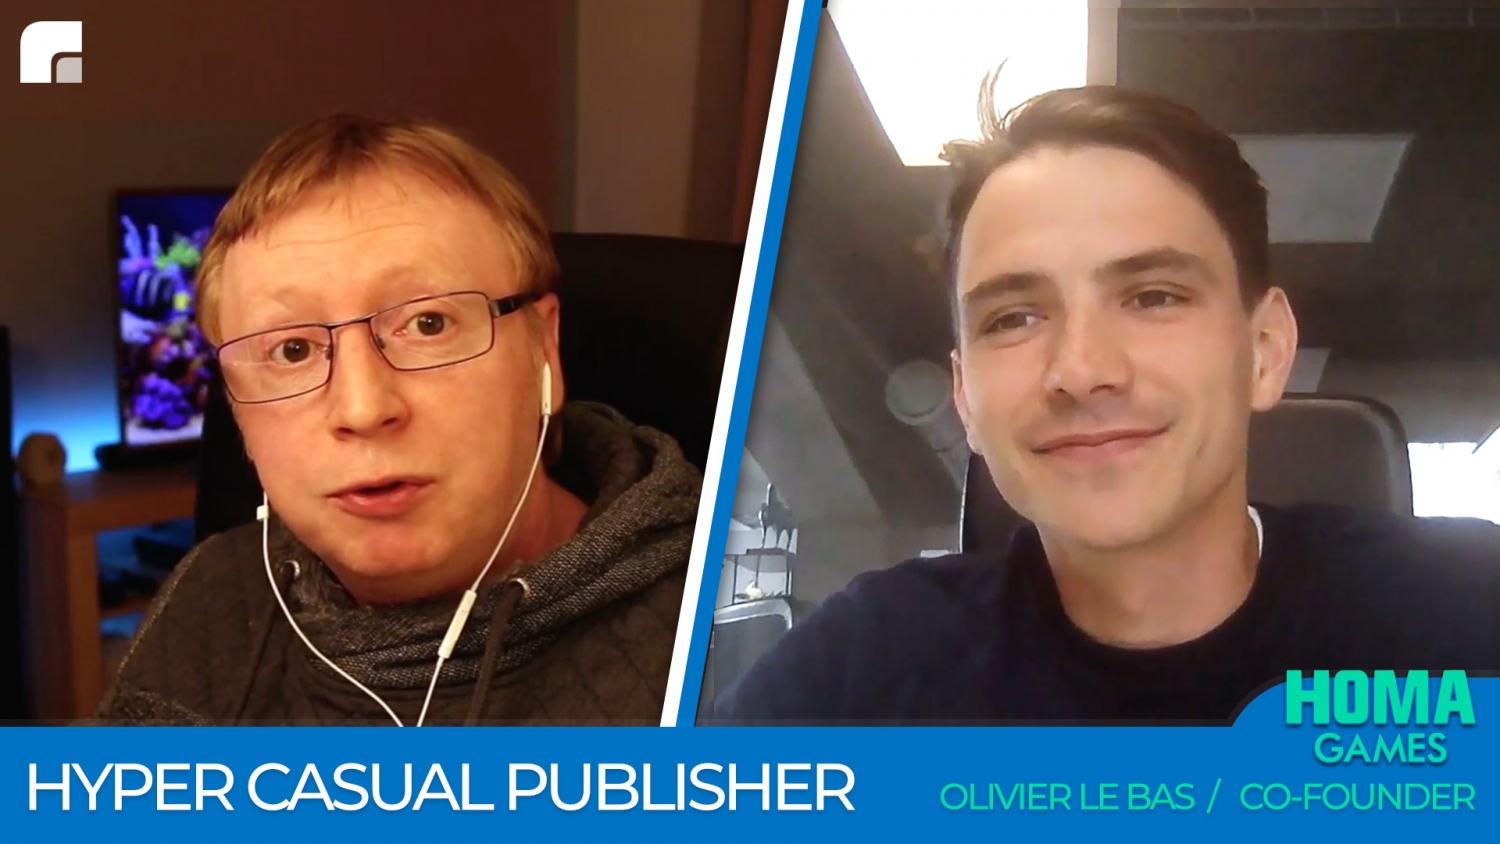 Homa Games - Hyper Casual Publisher - Olivier Le Bas